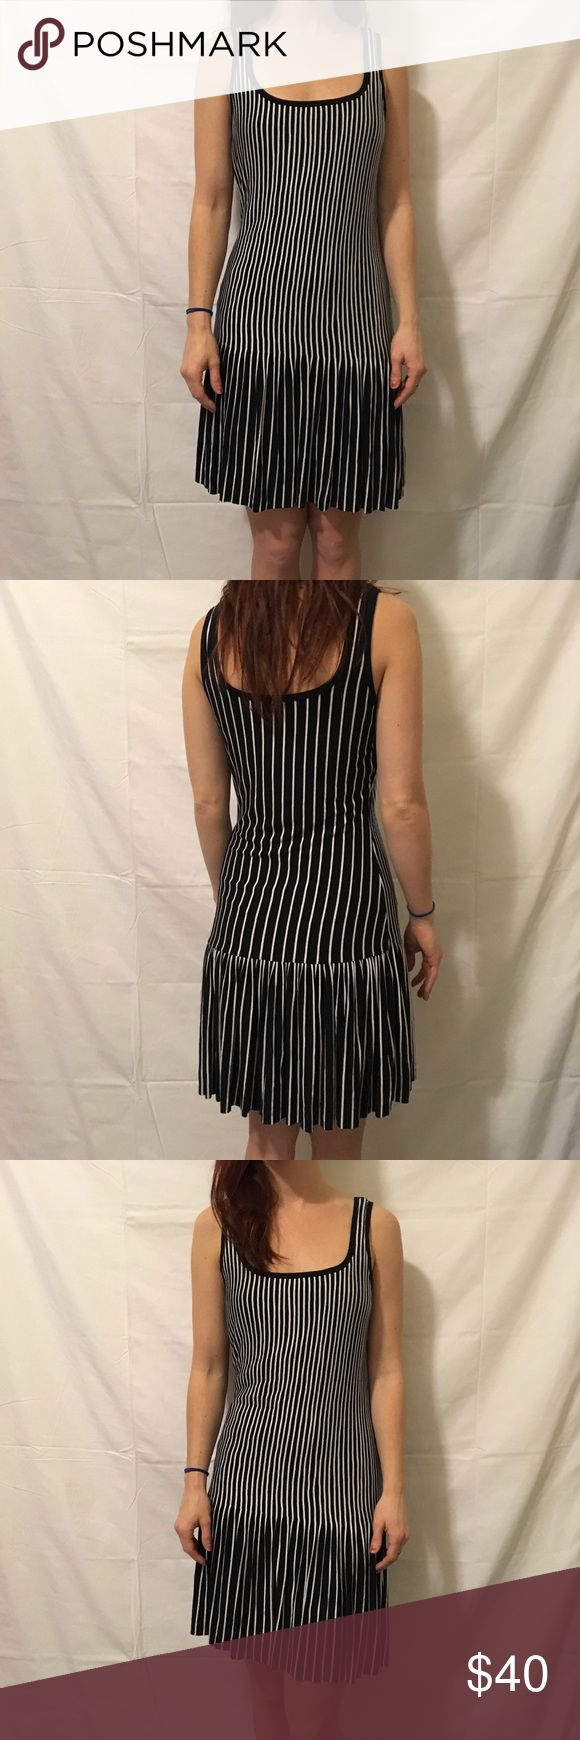 Bailey 44 Vertical Striped Sleeveless Dress Bailey 44 striped dress that is Sleeveless and is white and black and is above knee length! In new condition worn once! Bailey 44 Dresses Midi